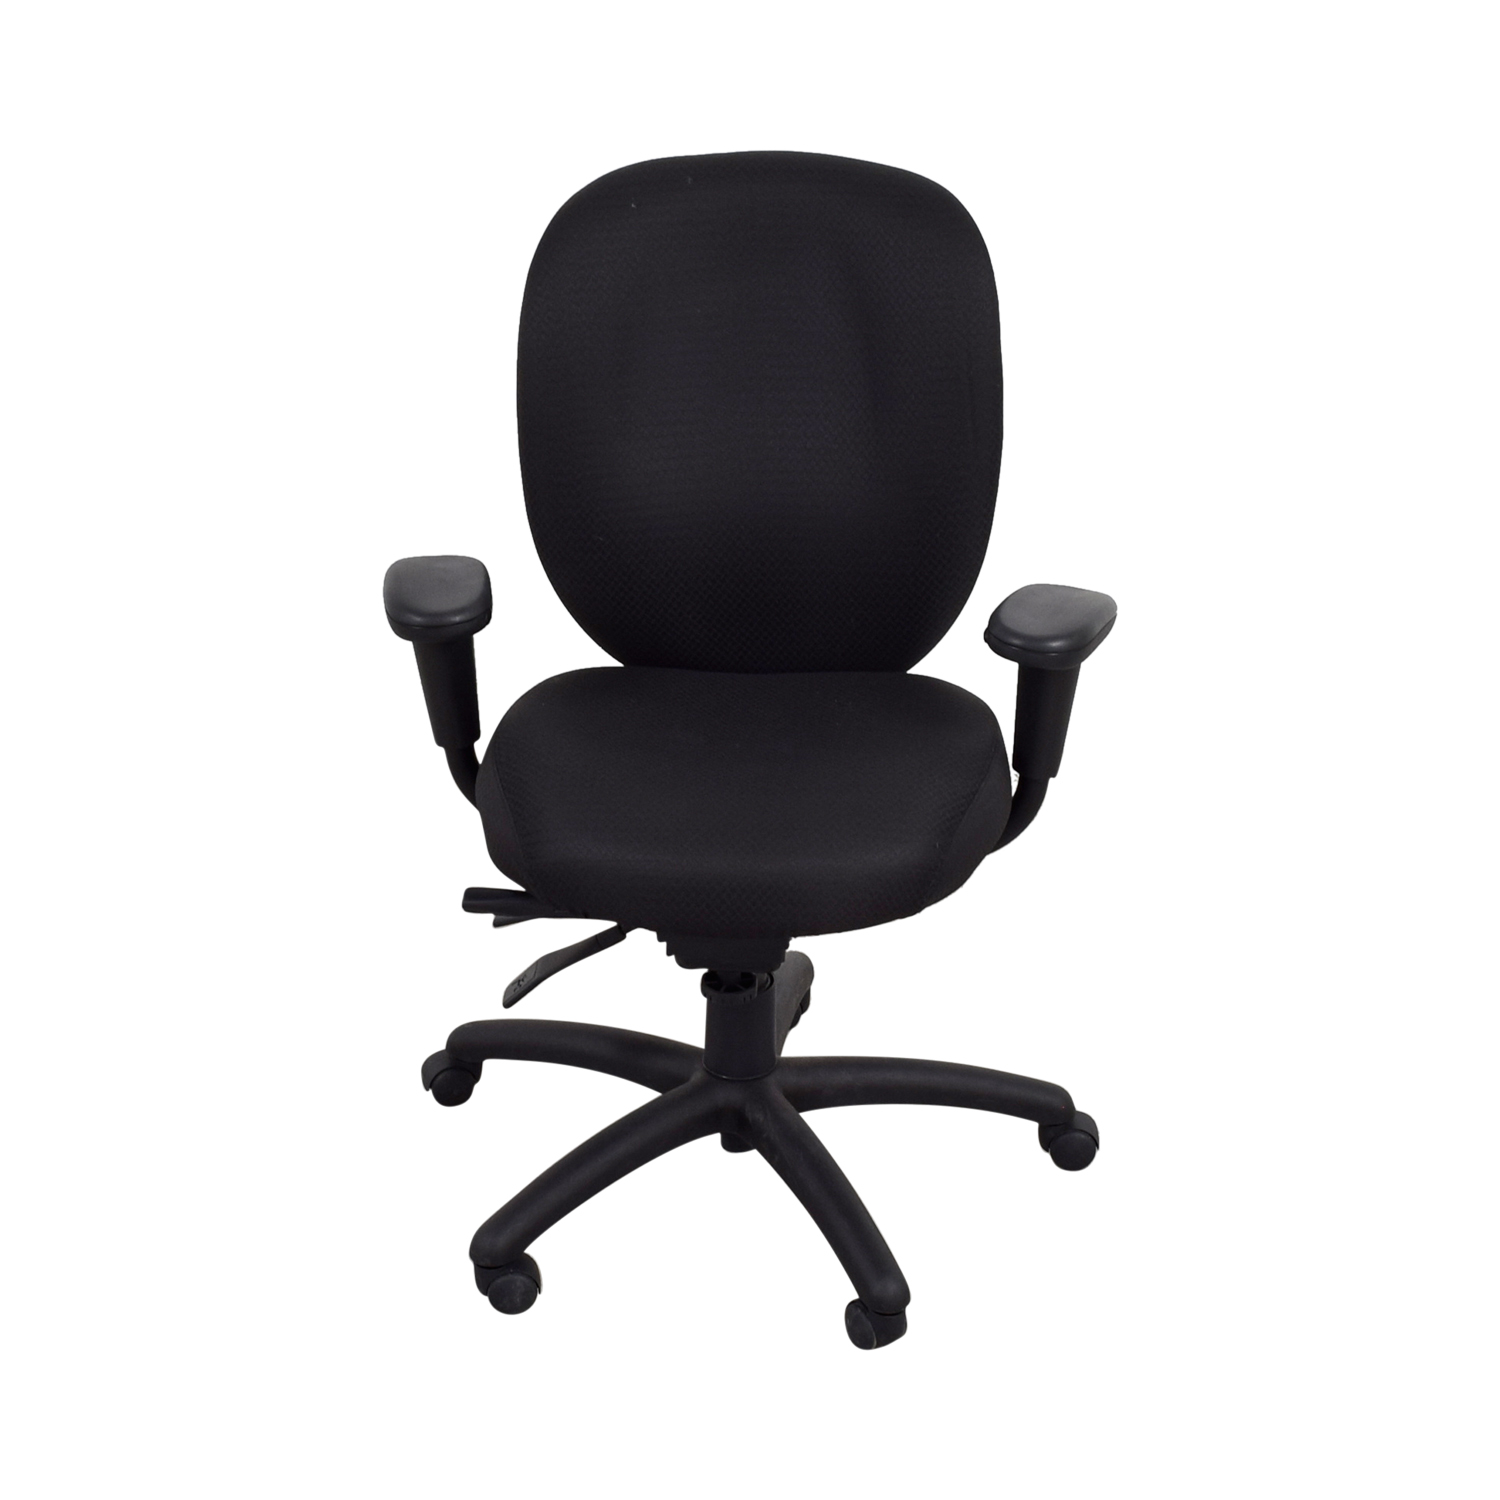 Home Office Chairs Used Home Office Chairs for sale